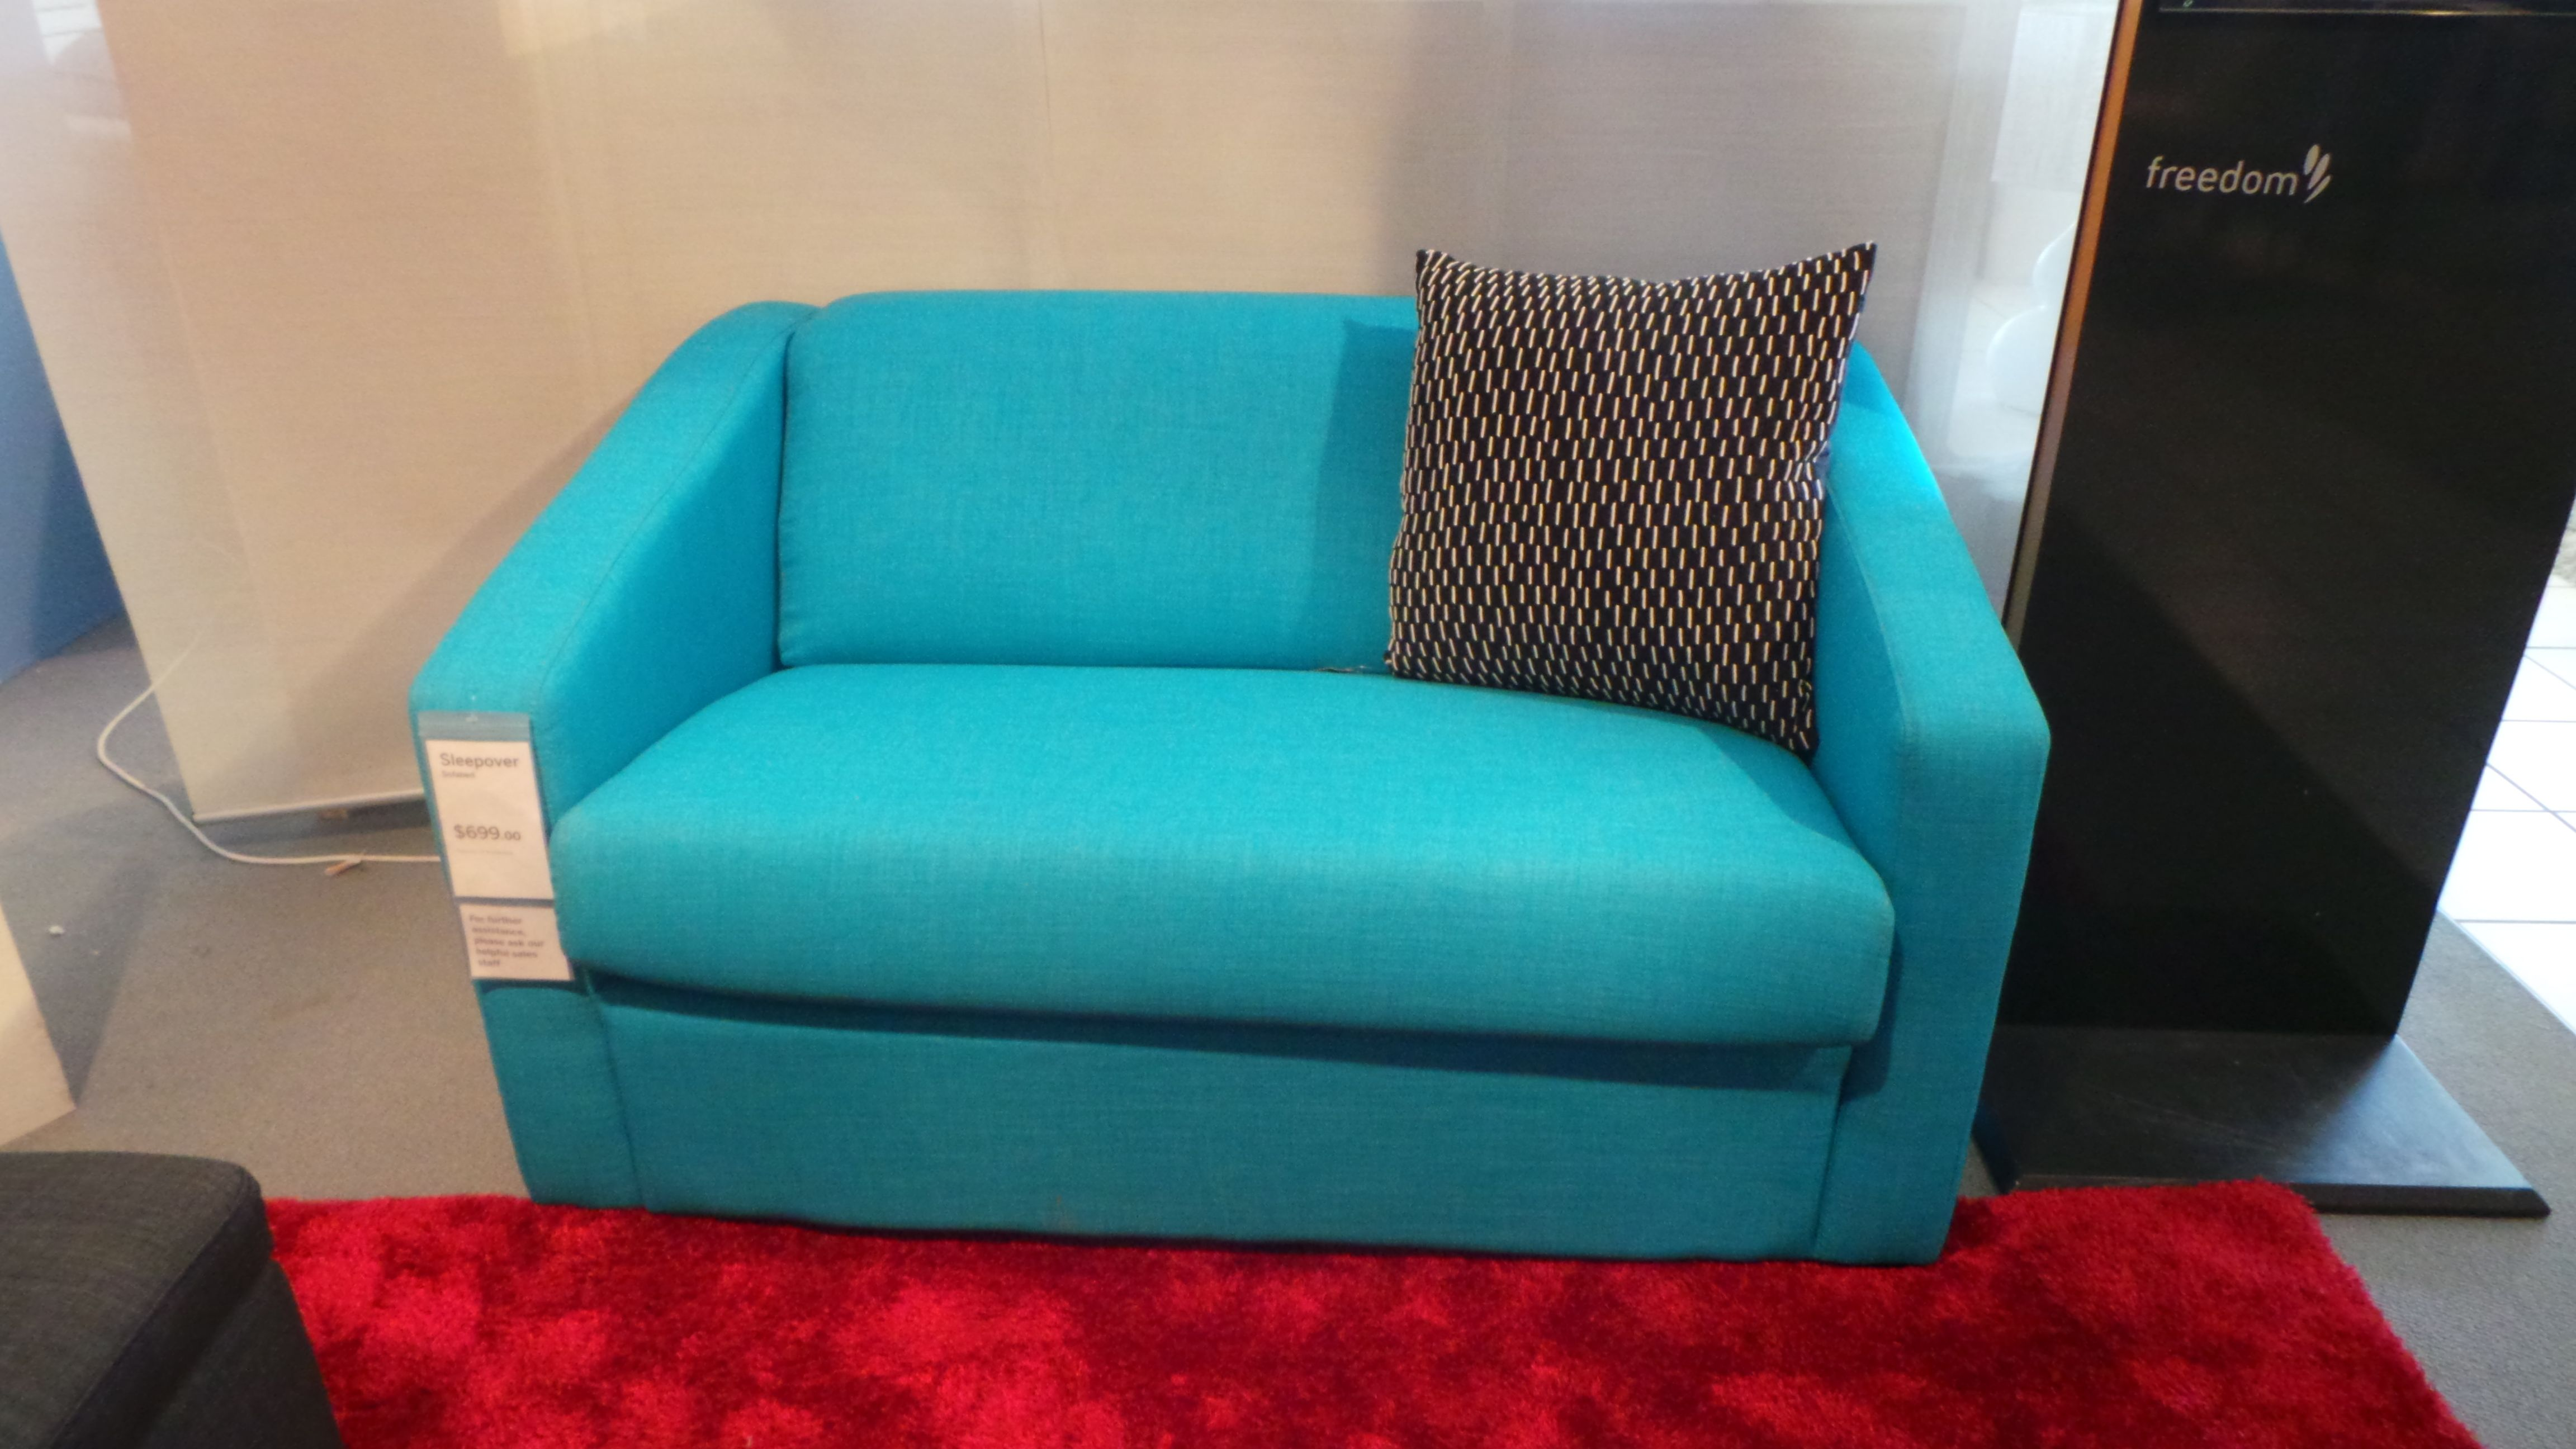 Turquoise Sofa Bed Freedom Furniture Room Pinterest